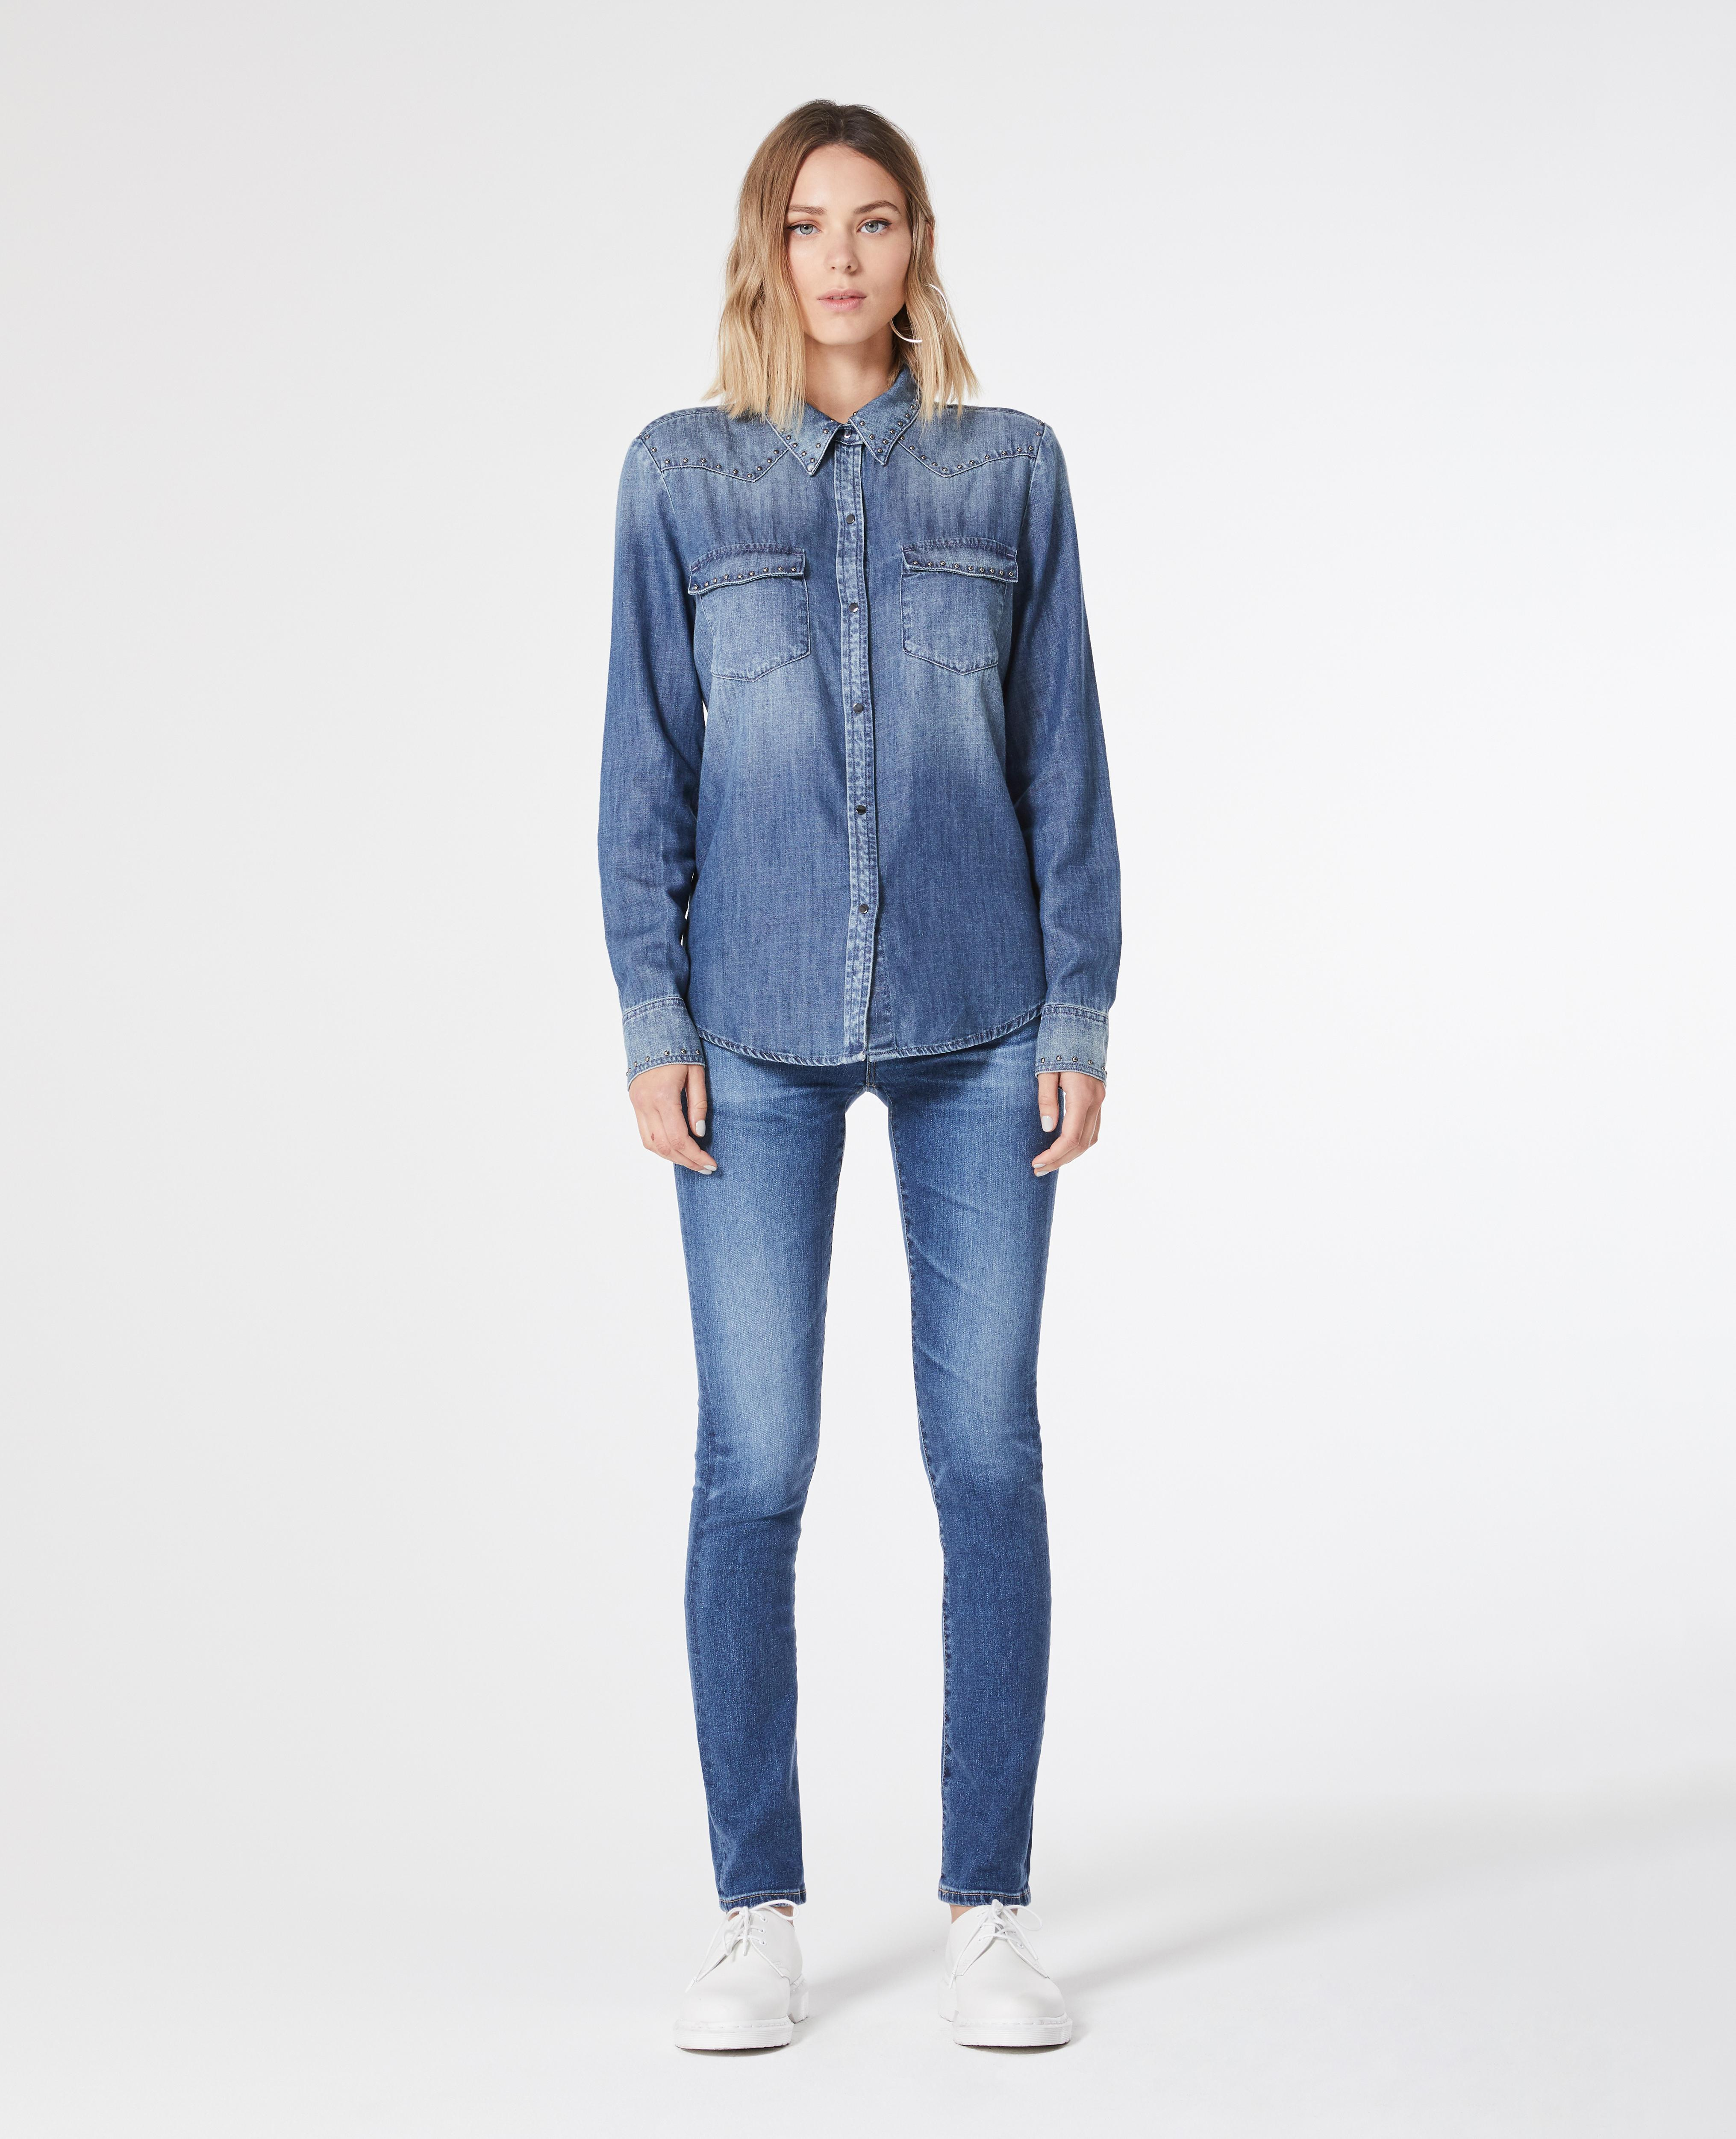 AG Jeans Woman High-rise Skinny Jeans Mid Denim Size 23 Buy Cheap With Credit Card Fake Cheap Price Cheap 2018 New Fashionable Cheap Online With Paypal Online Ih953q